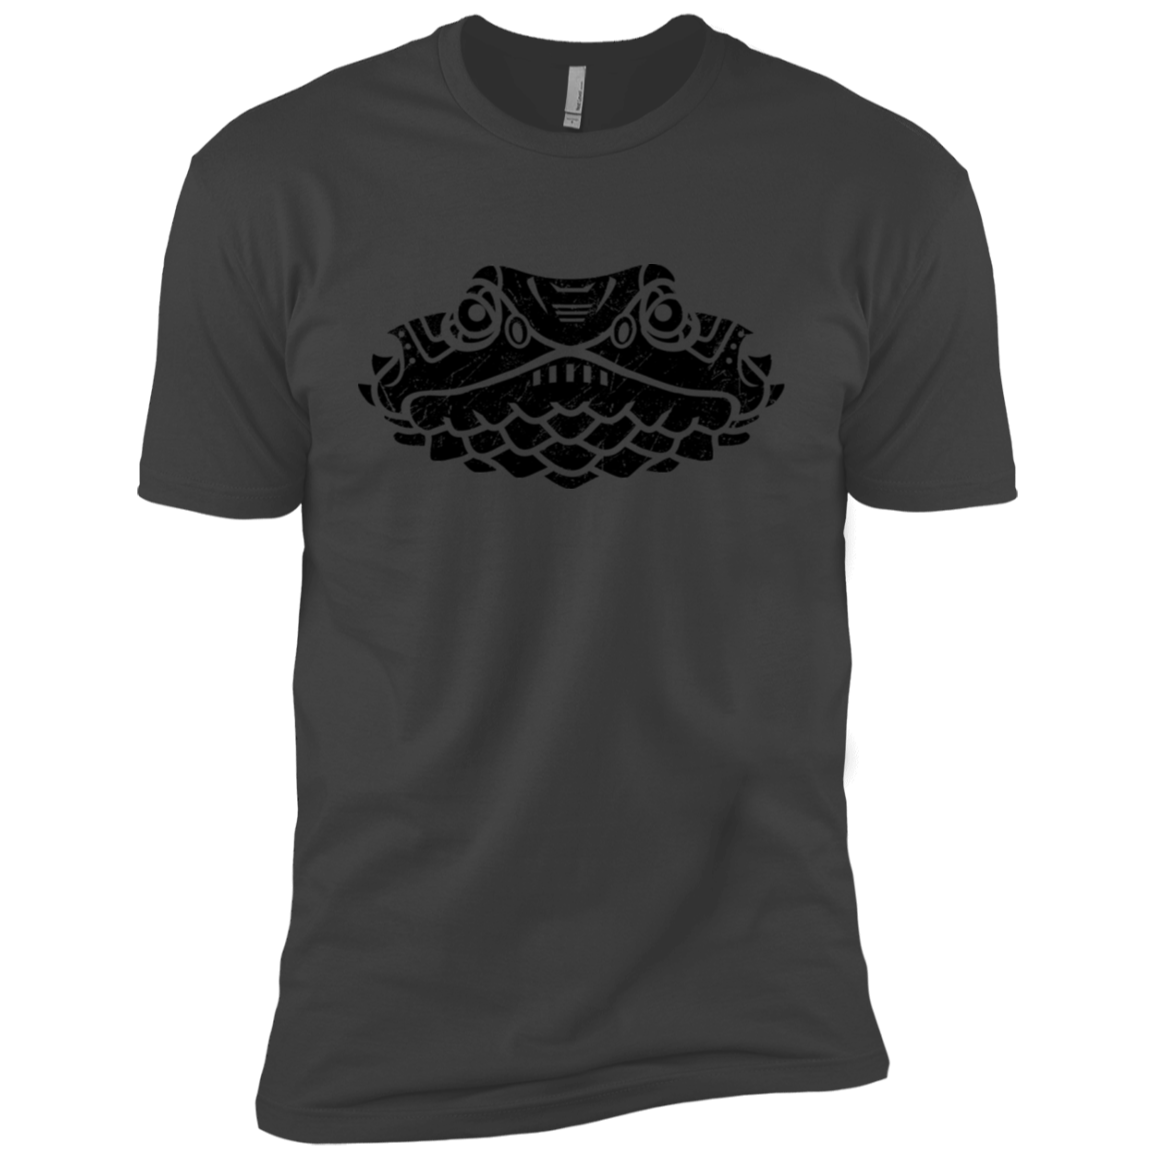 Black Distressed Emblem (Lizard/Queenie) - Dark Corps